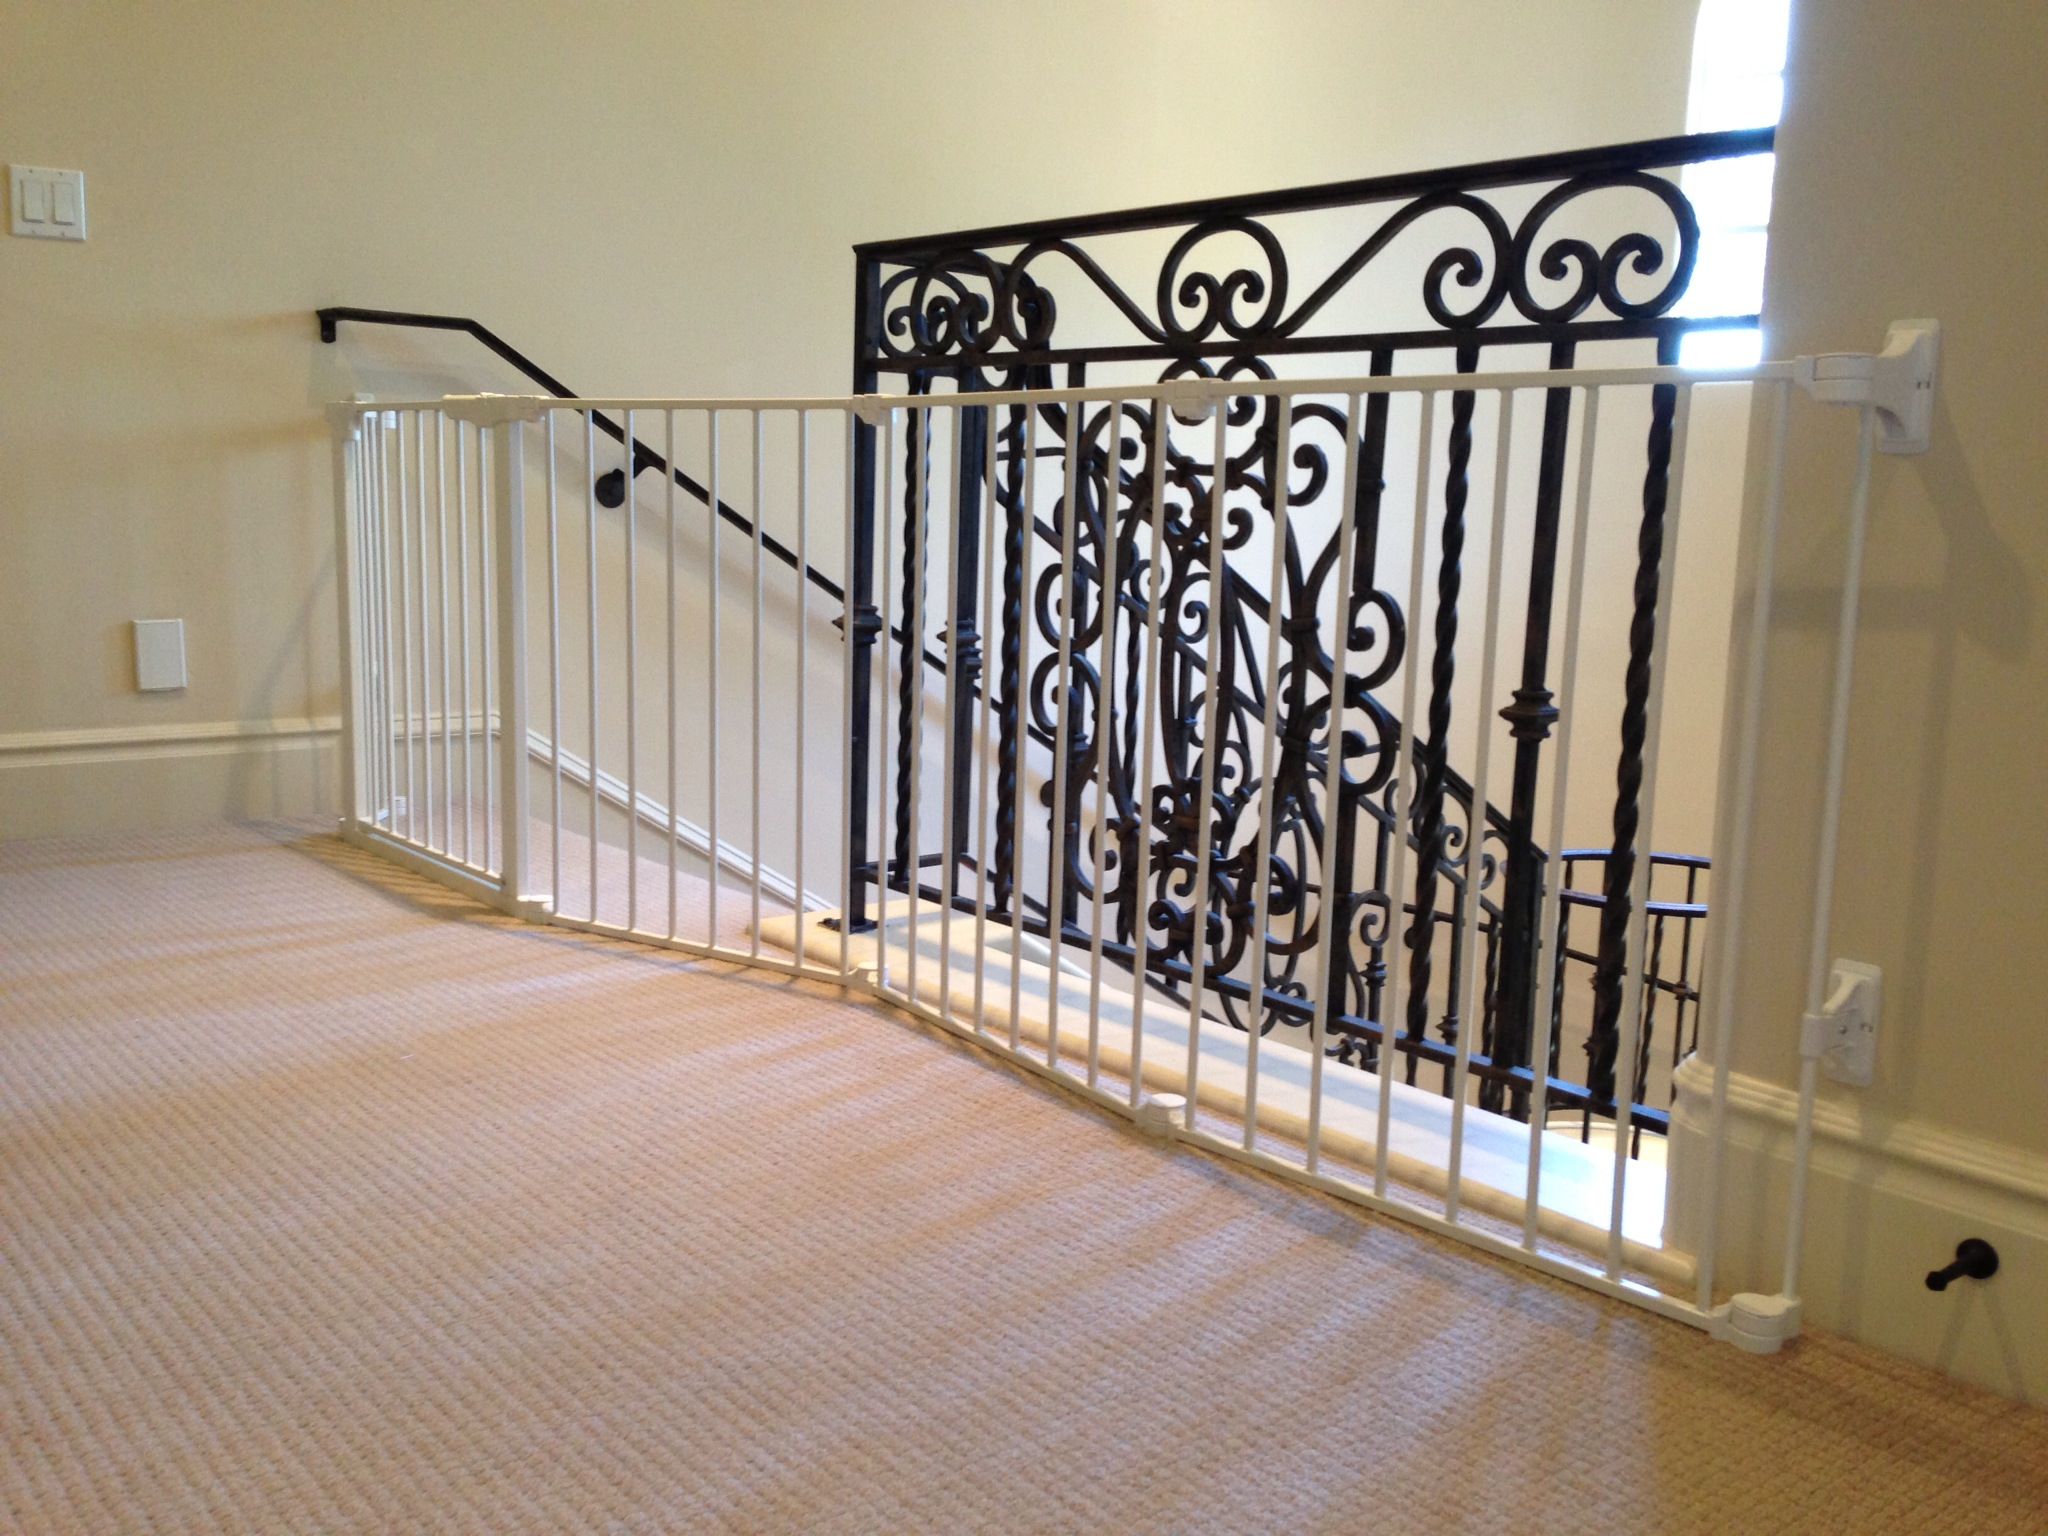 Gorgeous And Luxurious Baby Gate For Top Stairs Idea Made Of Scrolled Metal  In Black Color